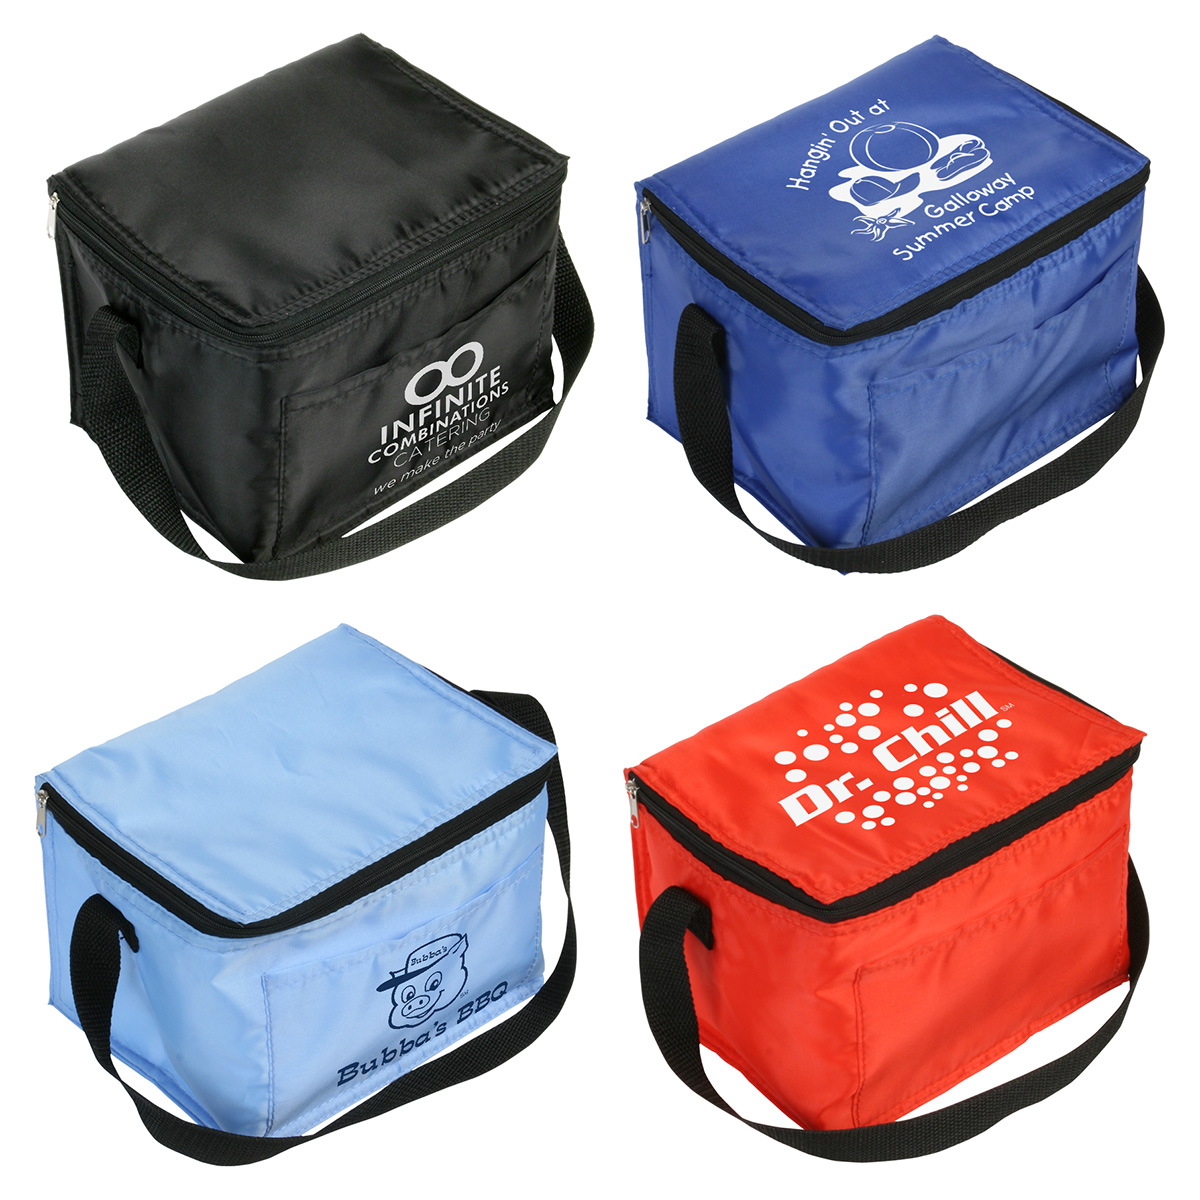 Snow Roller 6-Pack Cooler Bag, WBA-SR09, 1 Colour Imprint